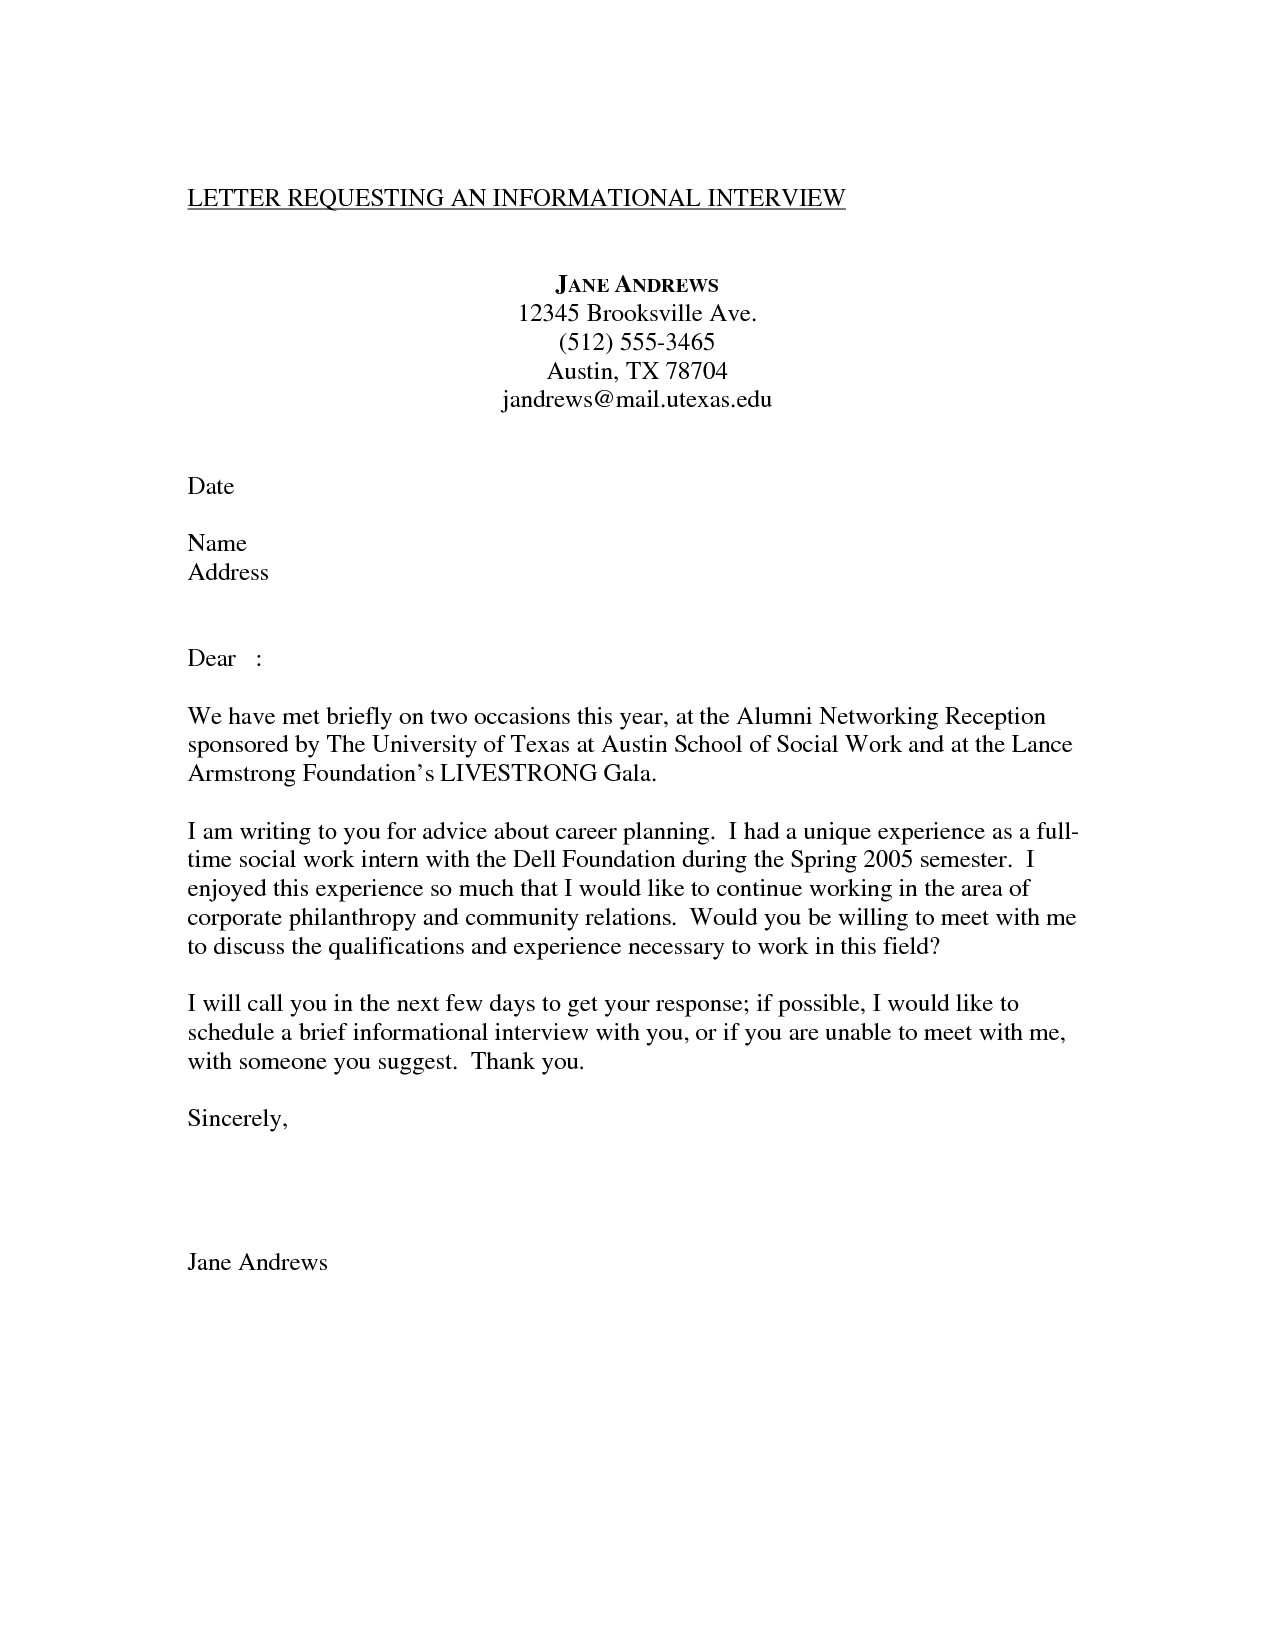 post sample cover letter requesting interview 381350